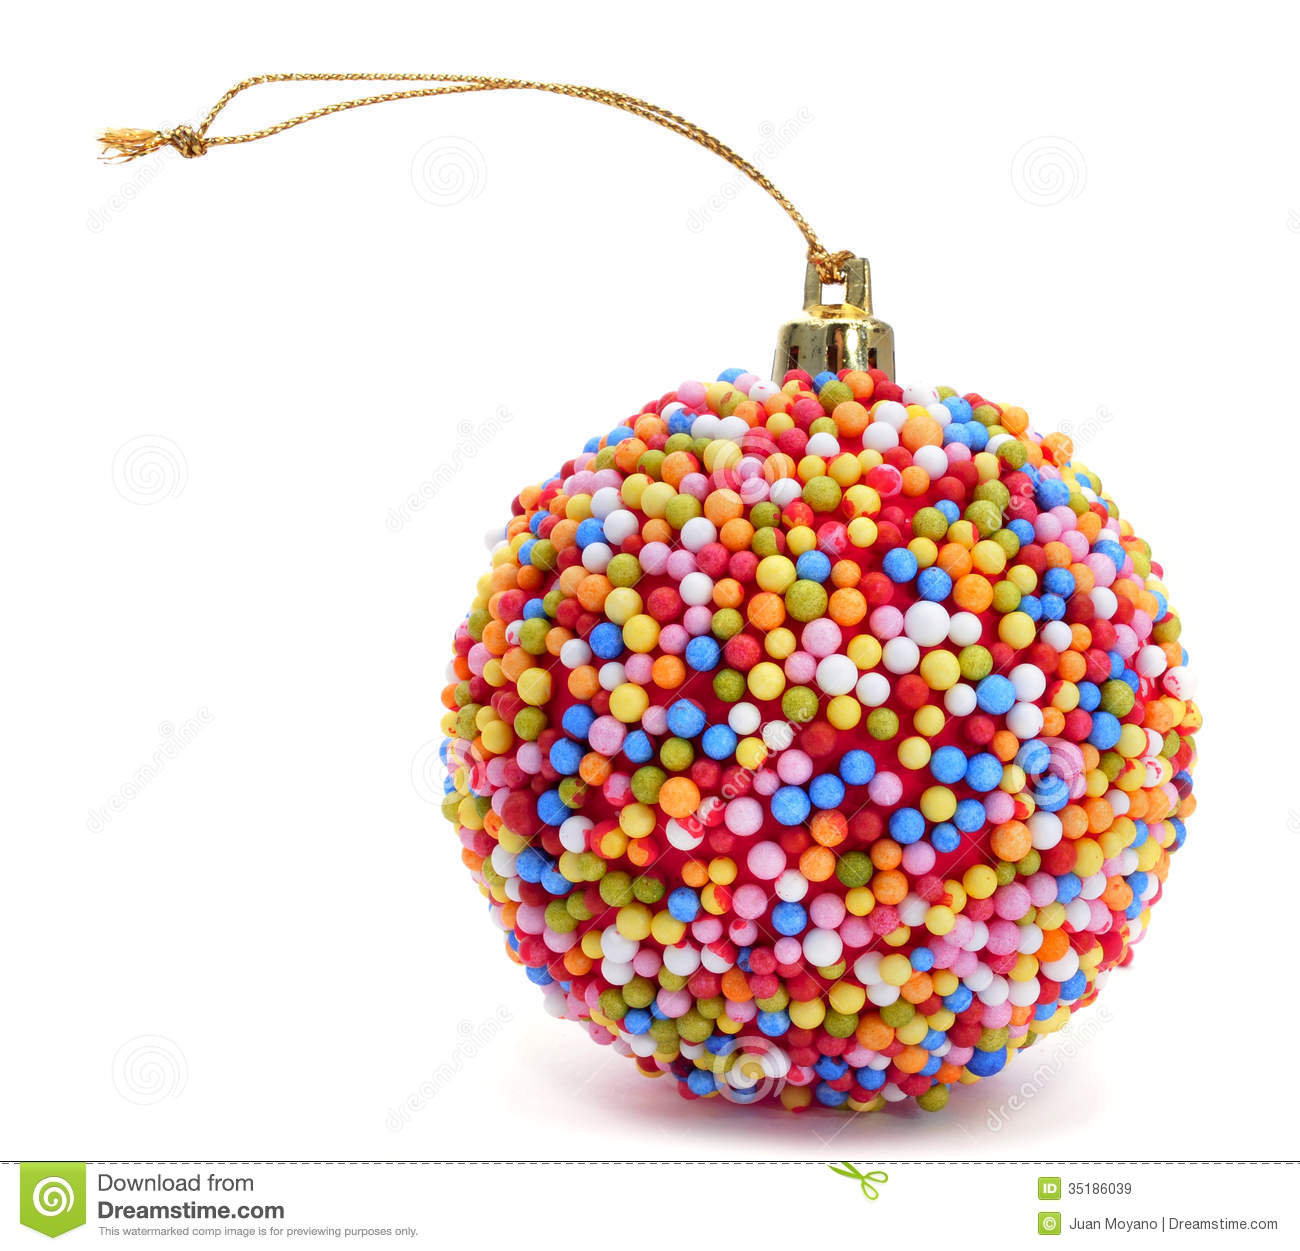 Christmas Colored Nonpareils With Candy Ball Stock Image Of Celebrate 35186039